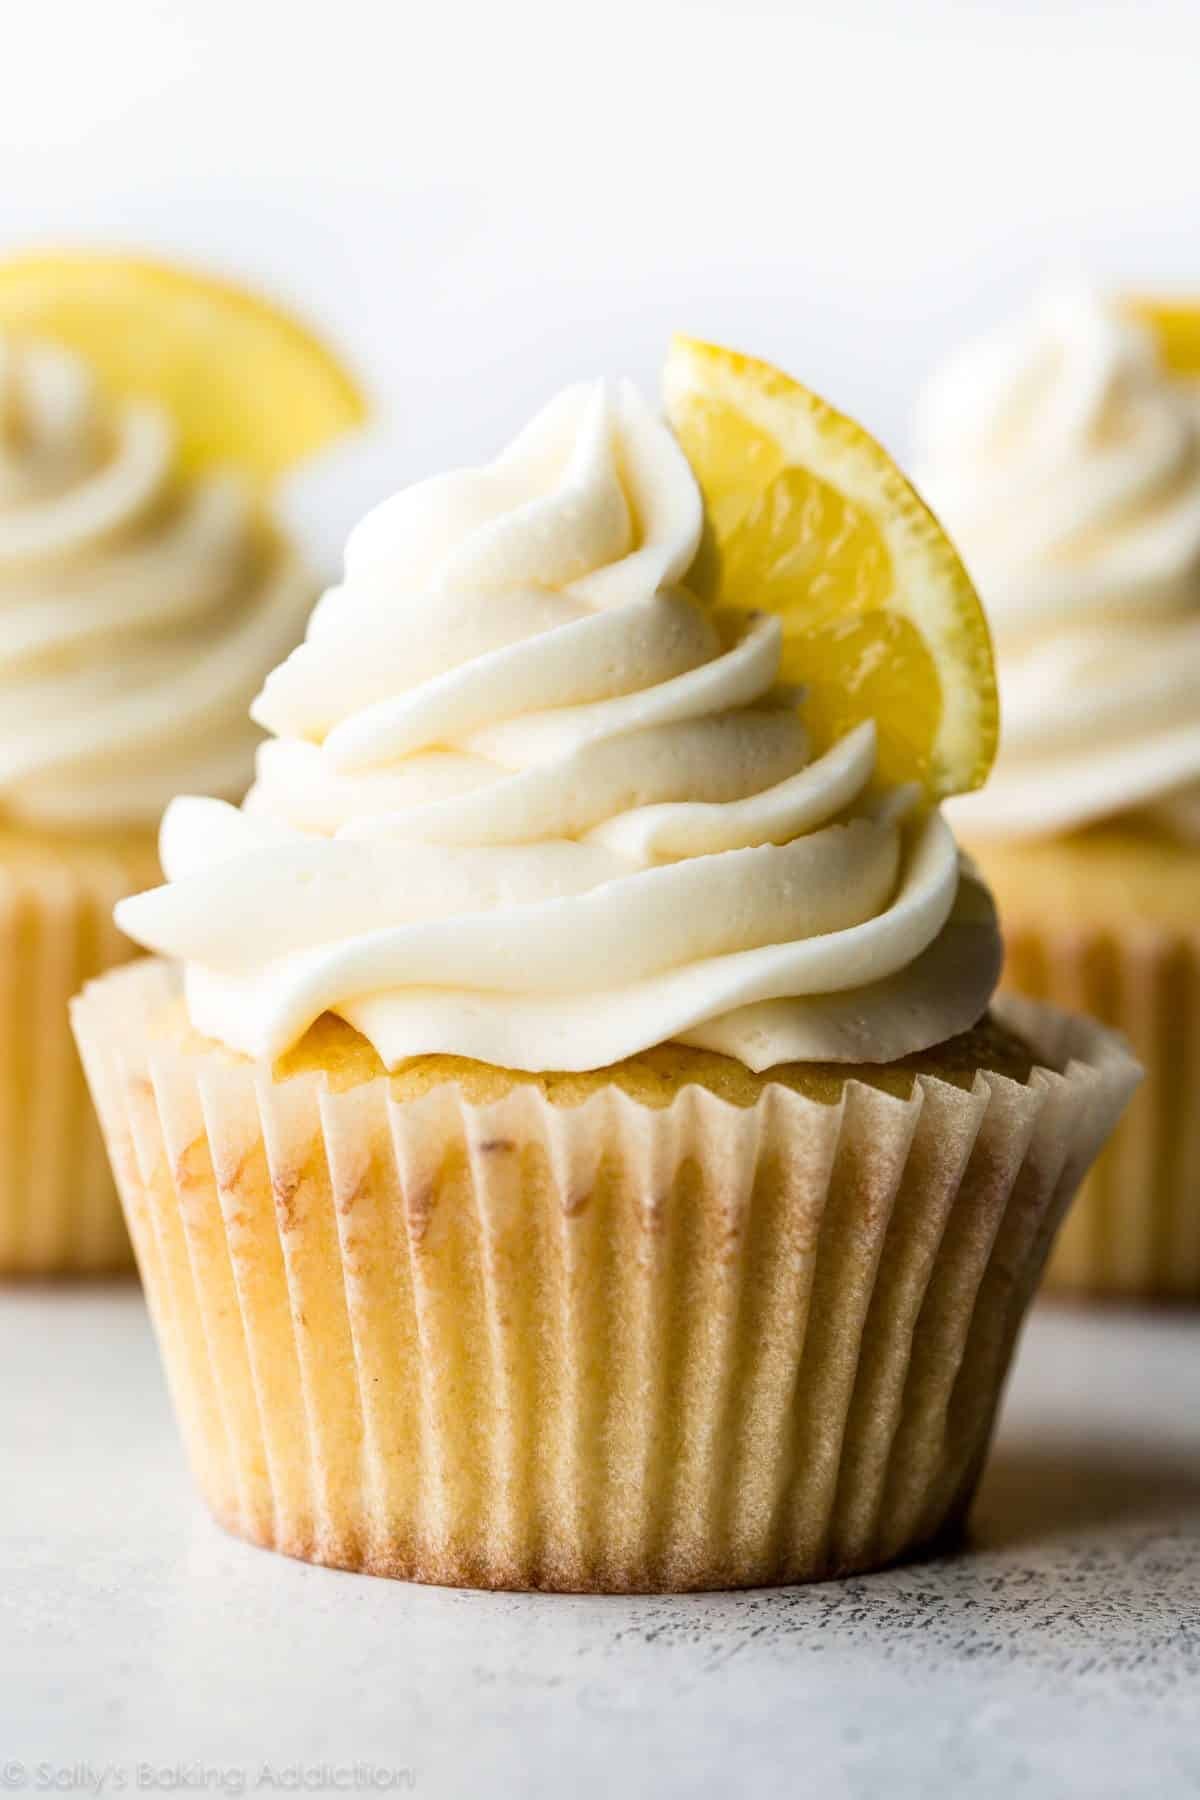 Lemon Cake From Vanilla Cake Mix